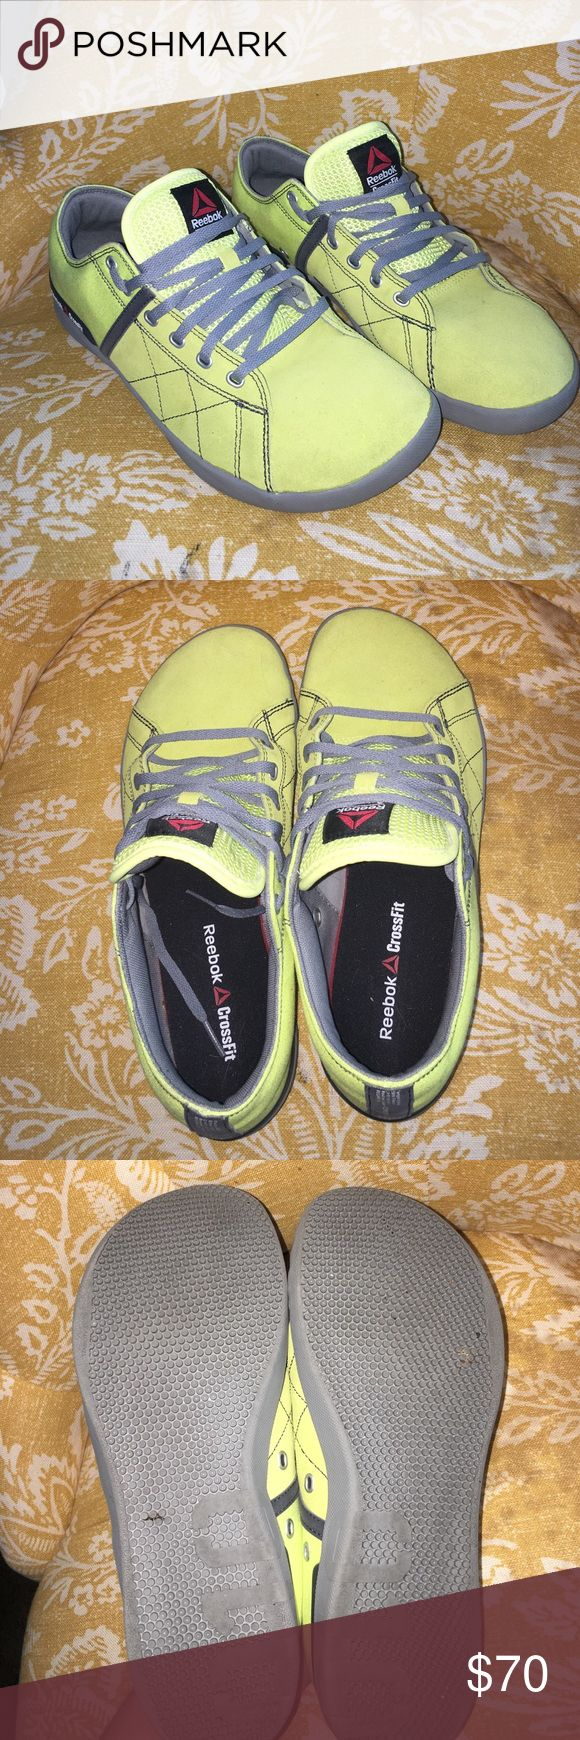 Reebok Crossfit Shoes Crossfit lifting shoes. Never worn outside, worked out once in them. Didn't fit me like I needed Reebok Shoes Athletic Shoes